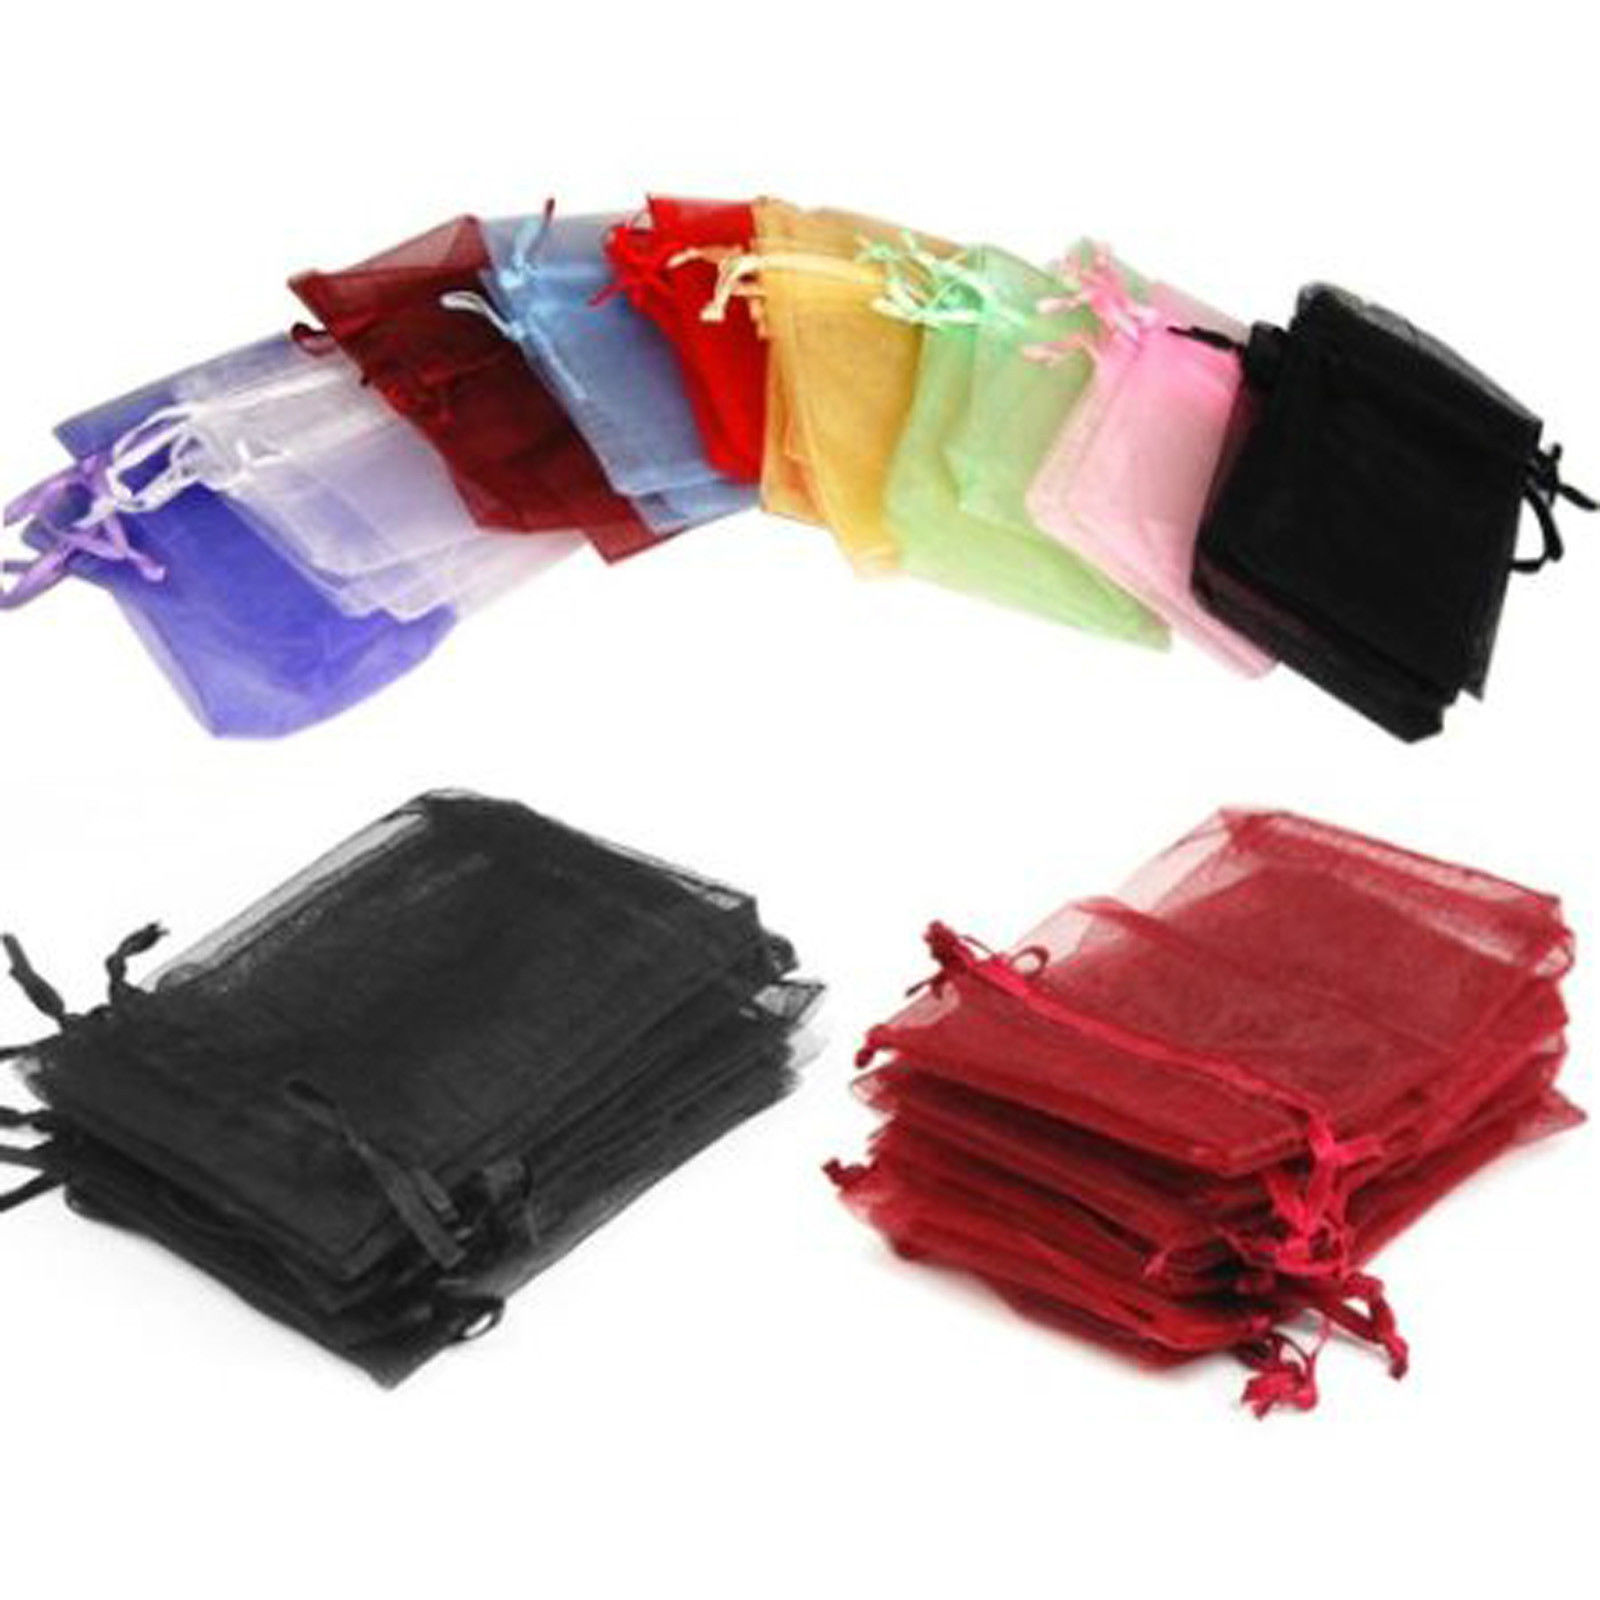 X Large 24 Organza Wholesale Bags  5 1/2 x 4 2/4